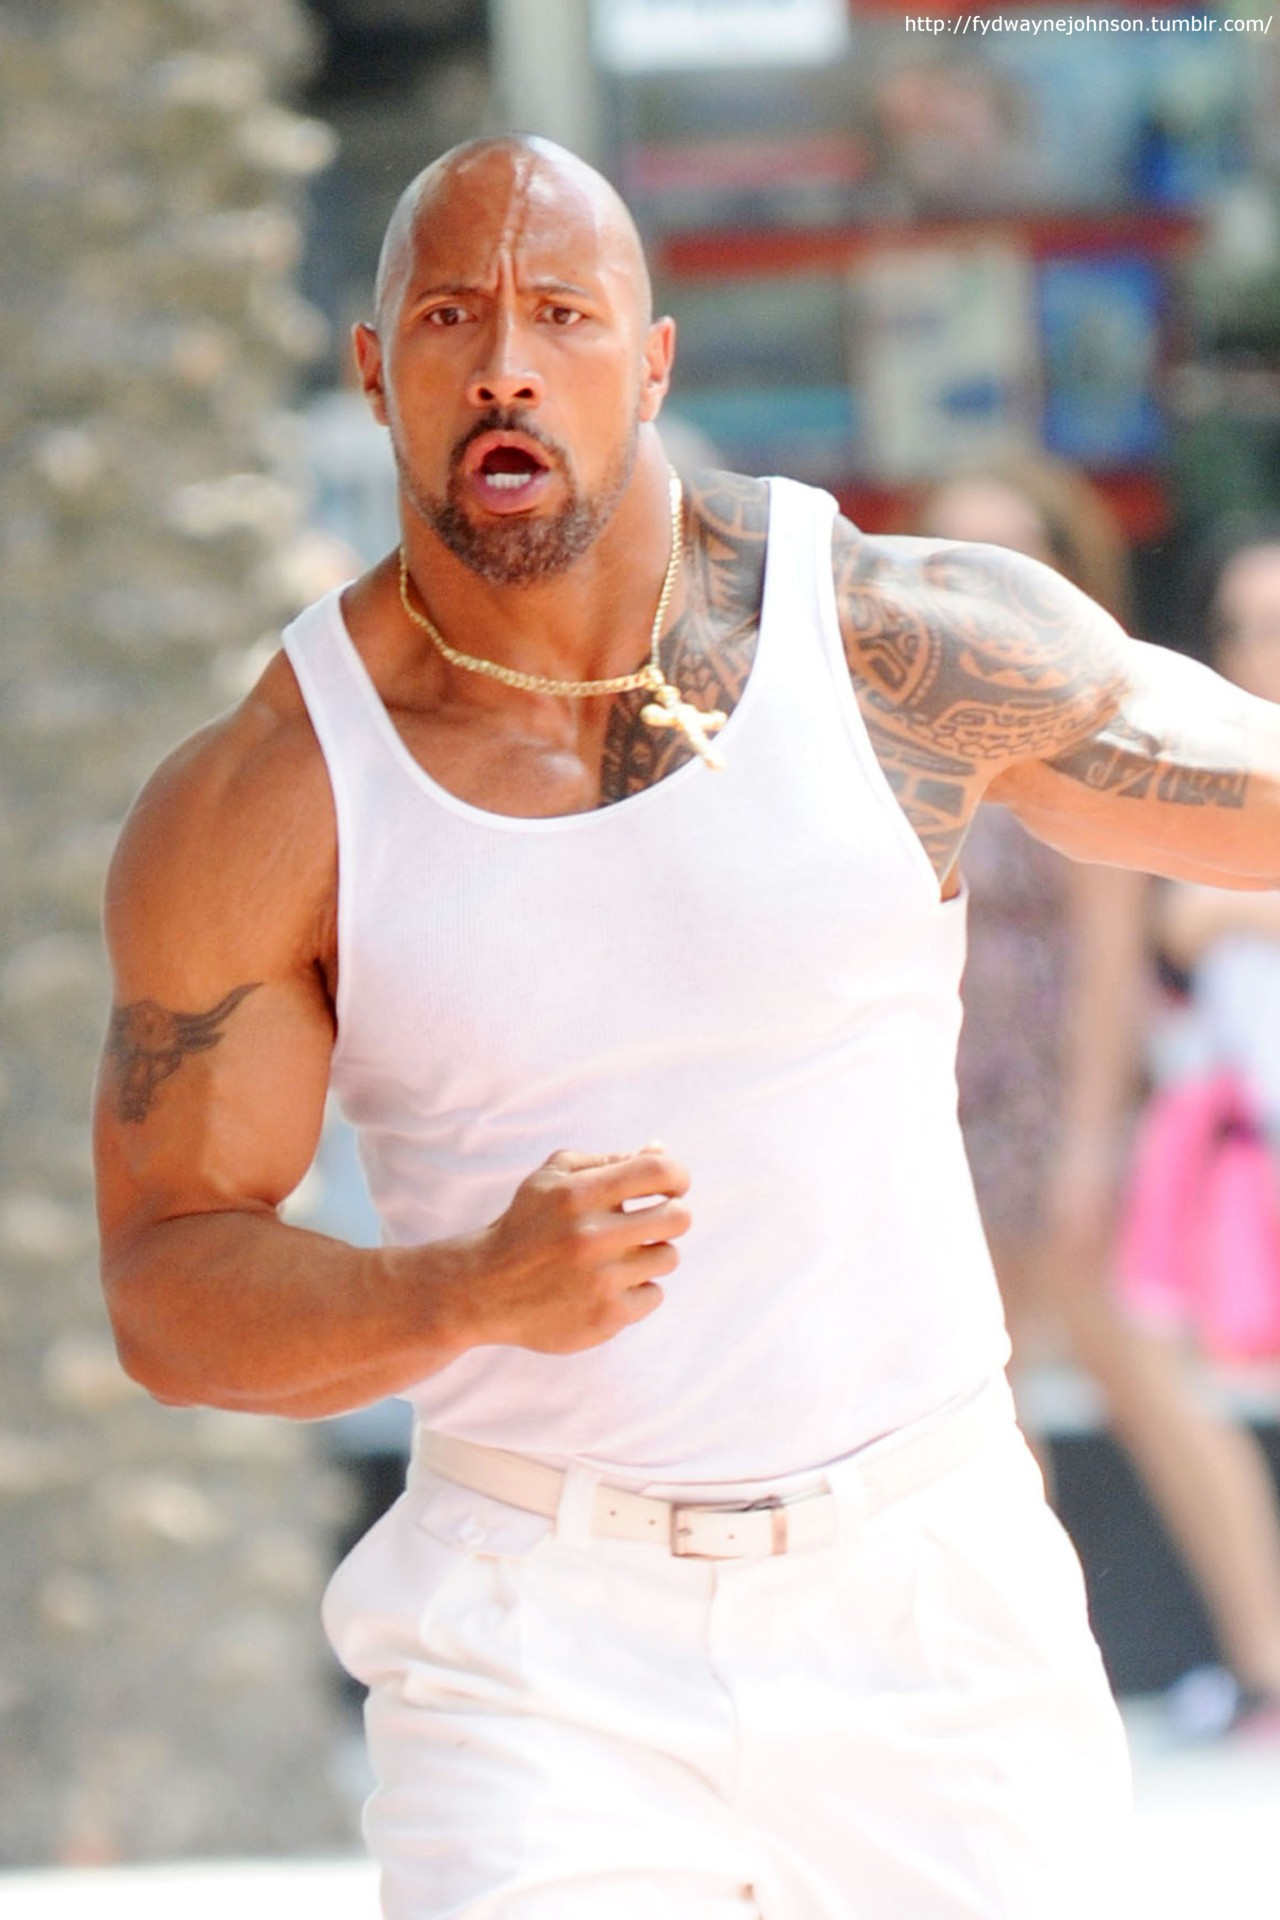 Marc Schiller Kidnappers Pain and Gain on emaze